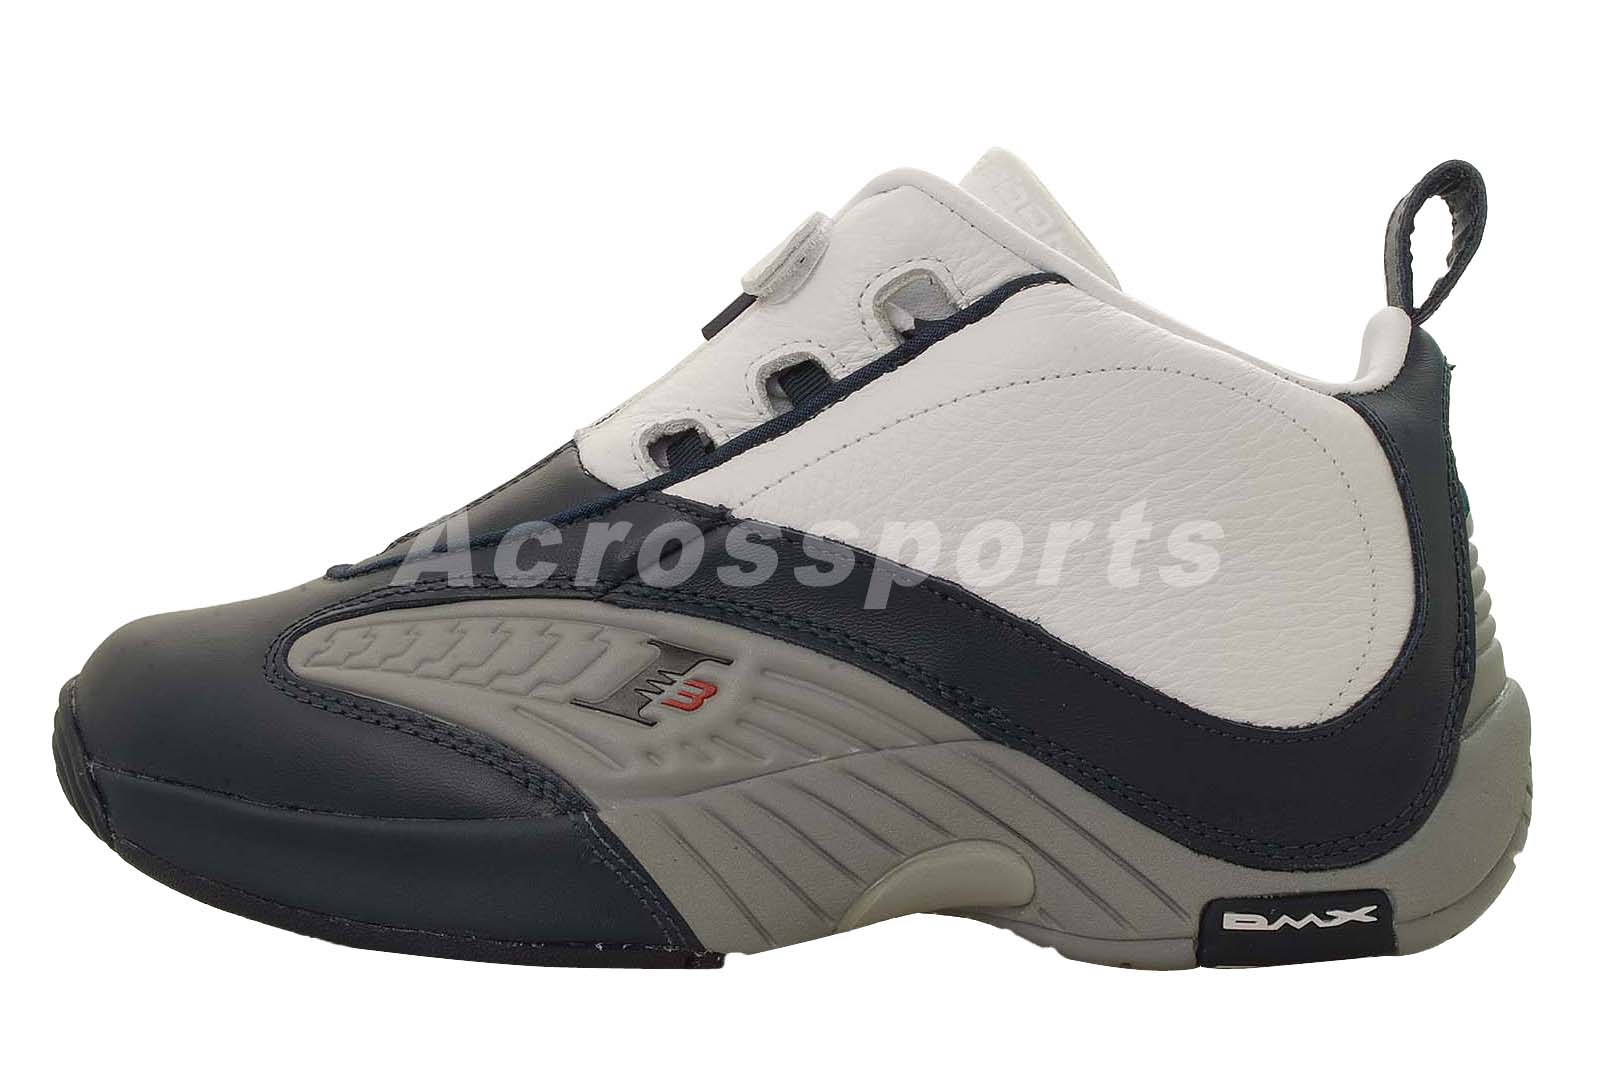 Chris Paul Shoes For Sale Philippines